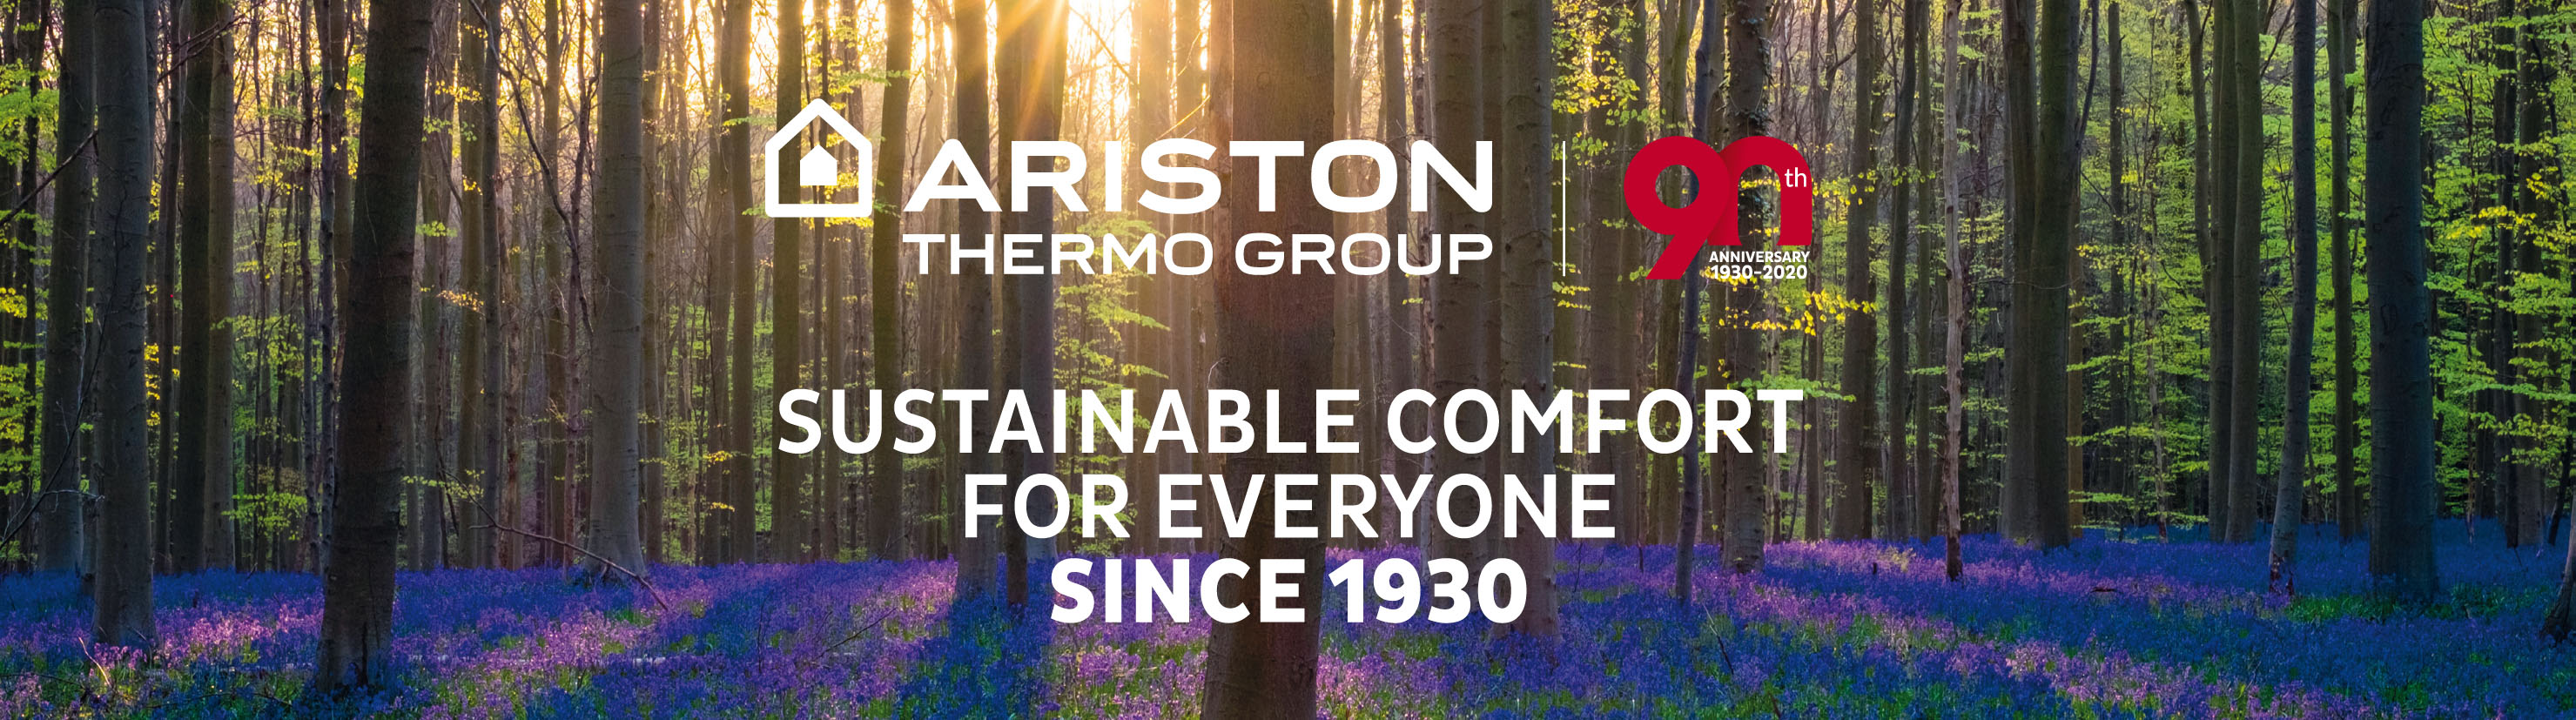 Elco Burners 90 JAHRE ARISTON THERMO GROUP